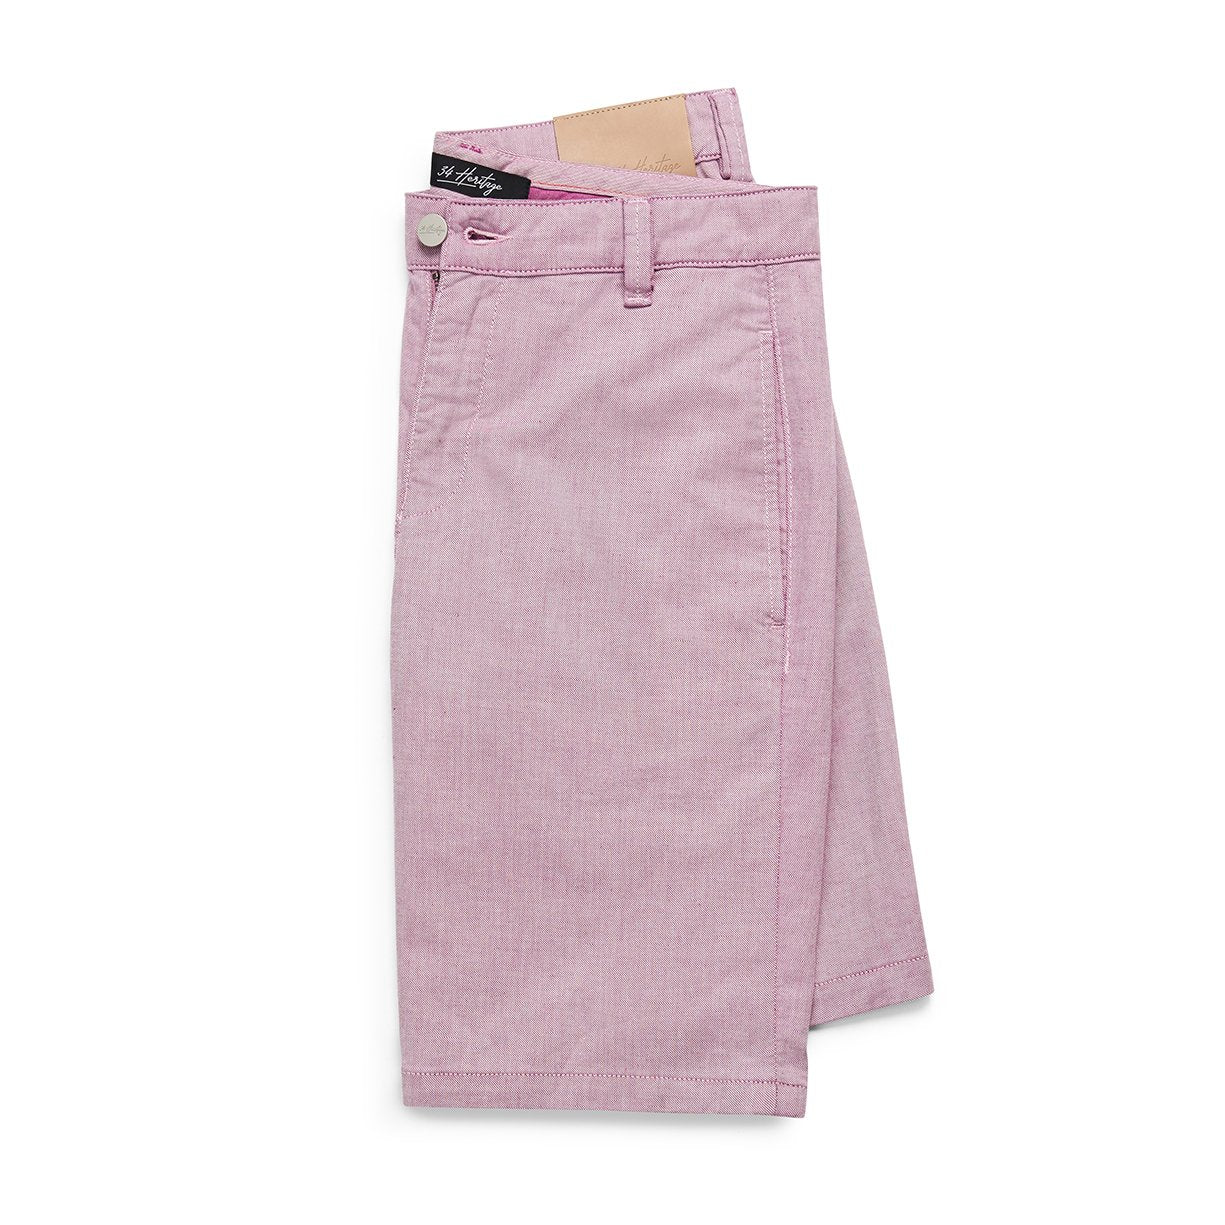 light berry pink shorts available in all sizes for men